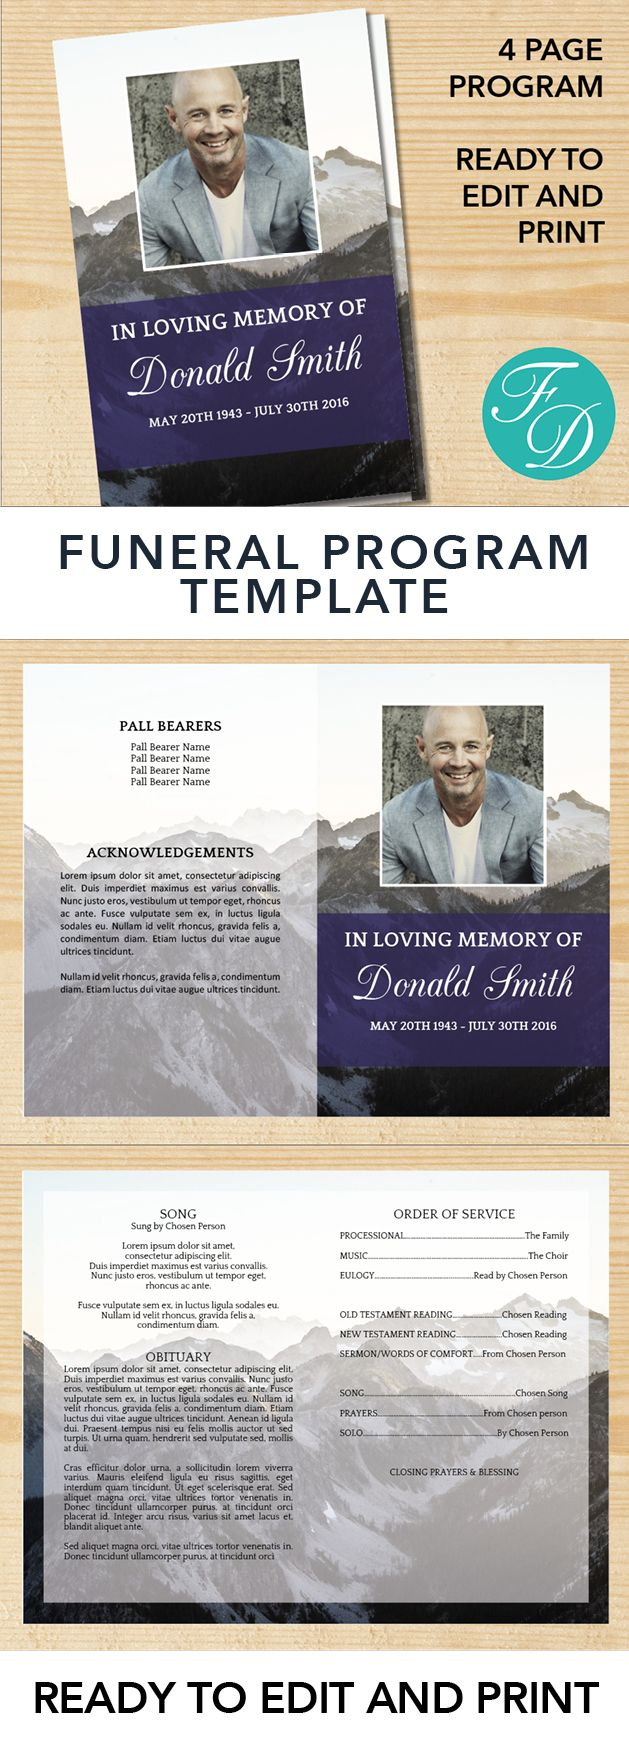 Mountains Printable Funeral program ready to edit & print. Simply purchase your funeral templates, download, edit with Microsoft Word and print. #obituarytemplate #memorialprogram #funeralprograms #funeraltemplate #printableprogram #celebrationoflife